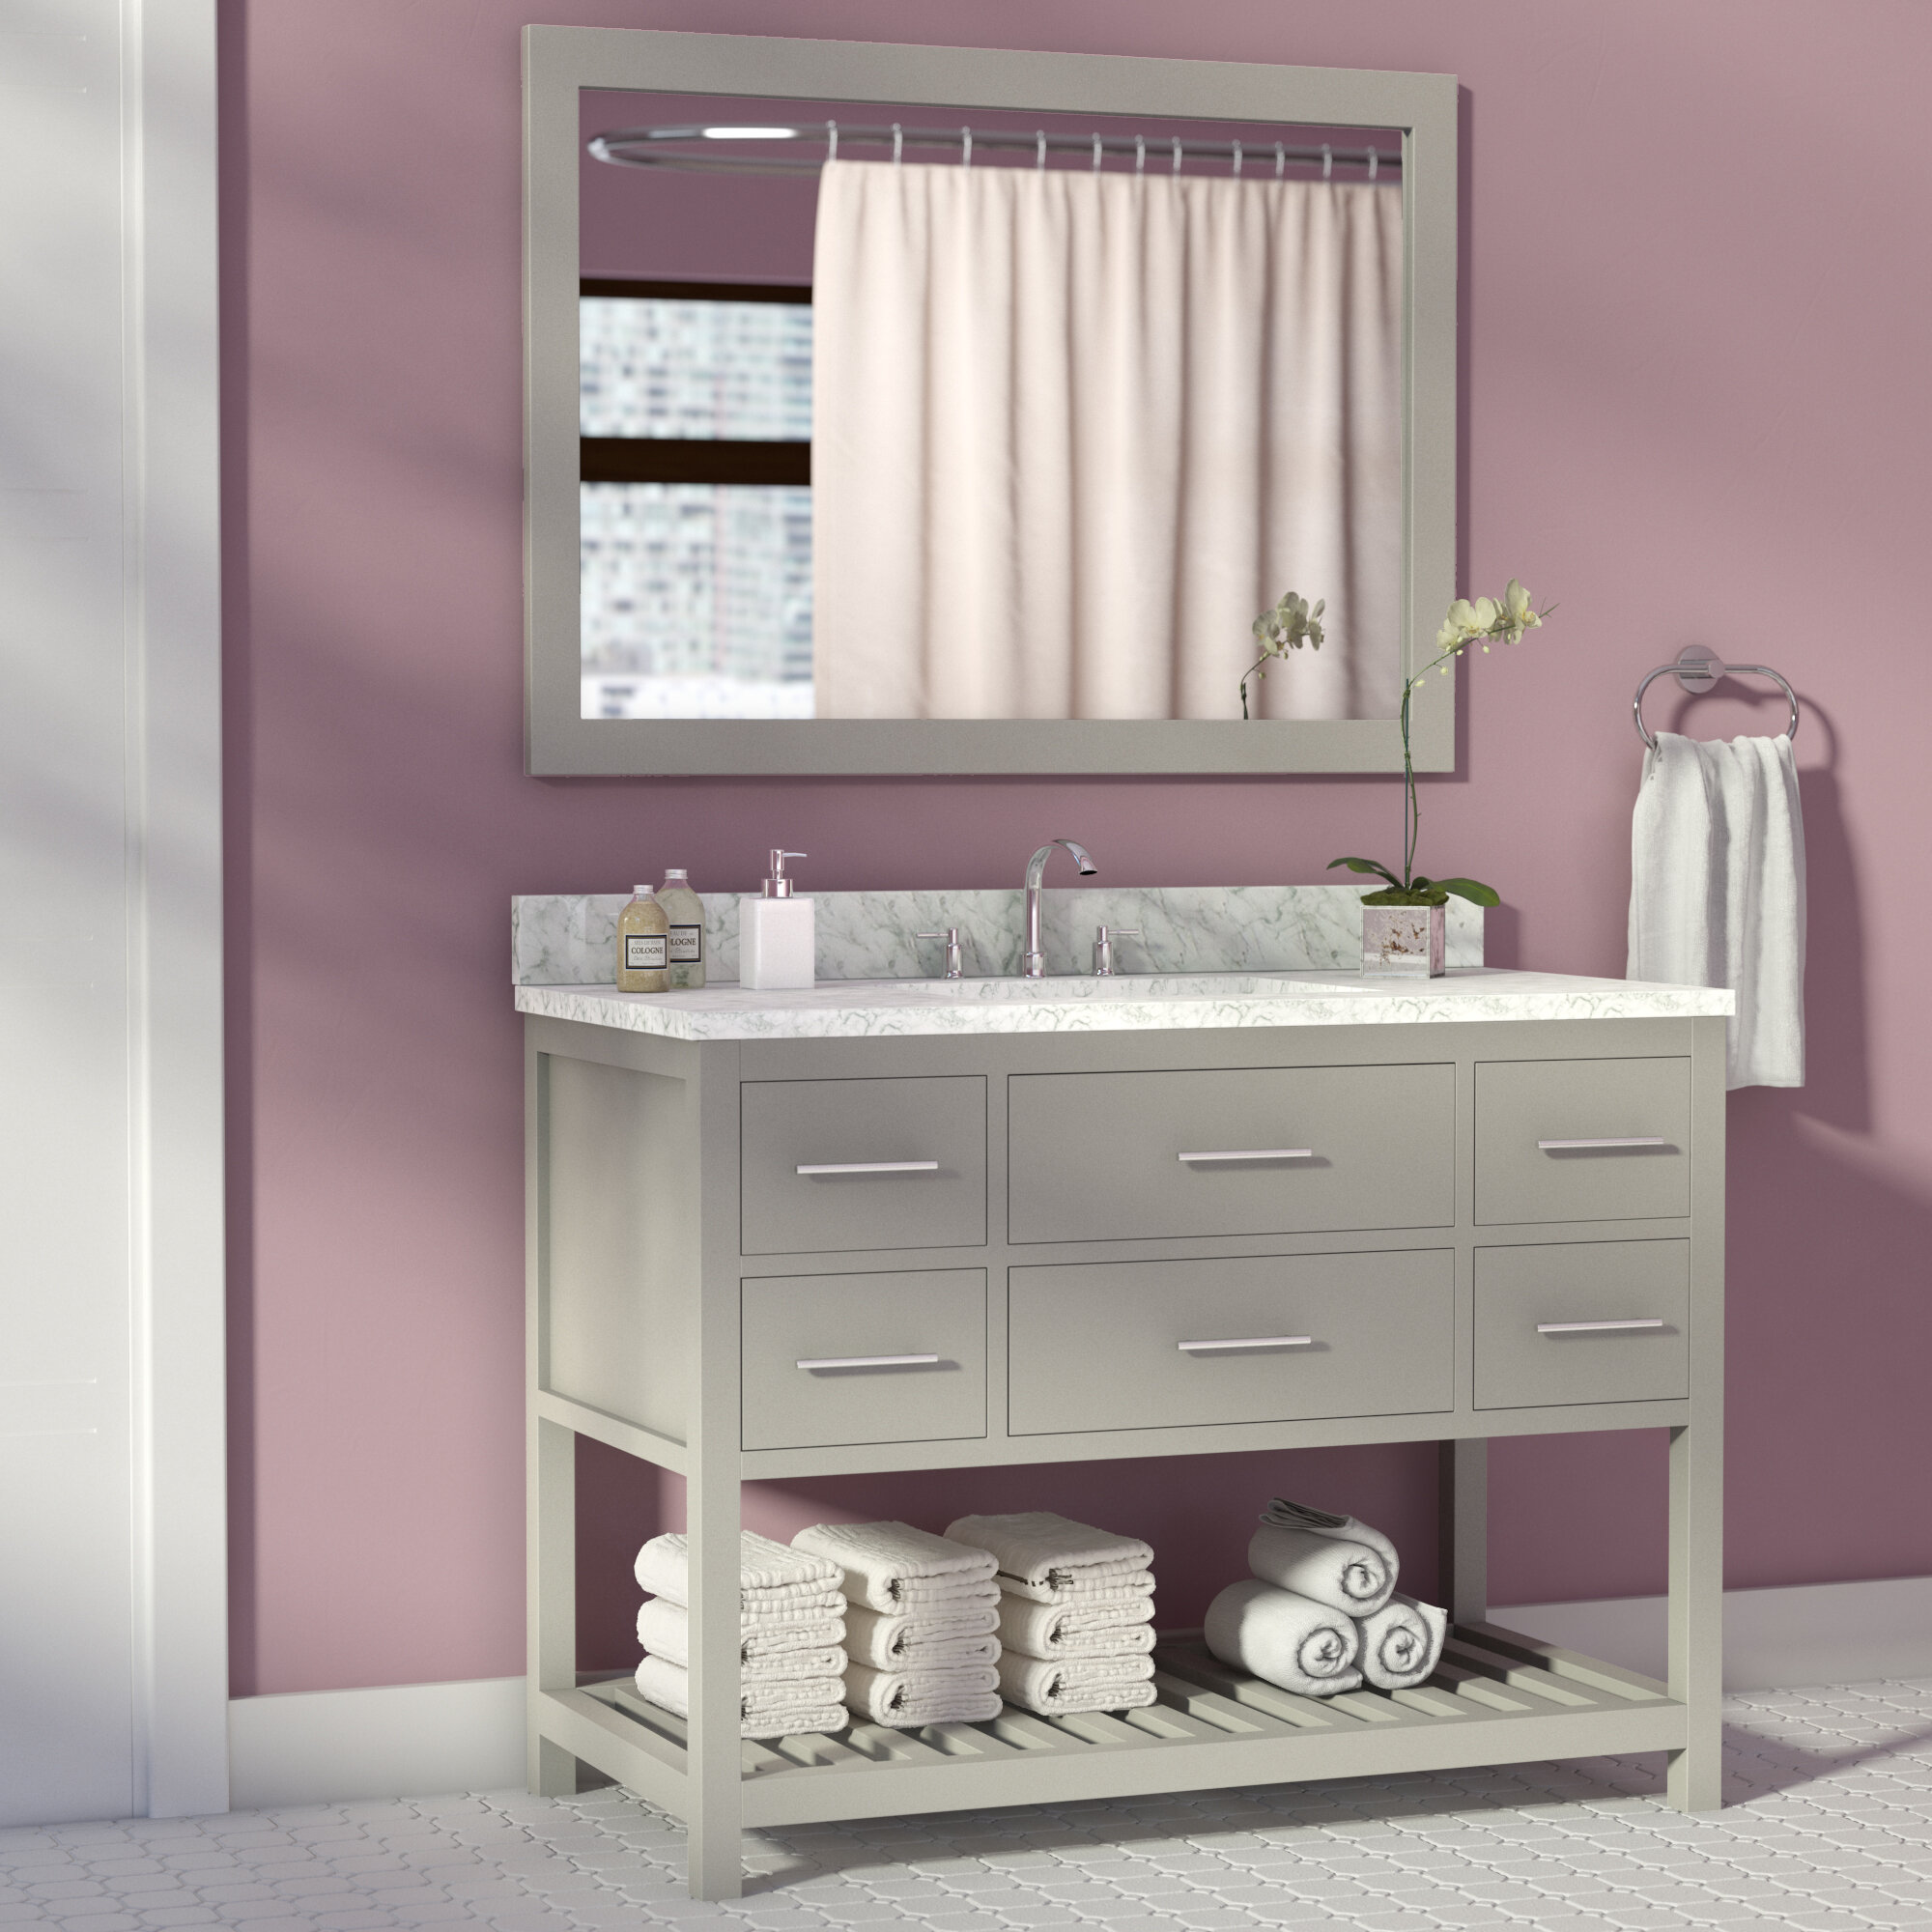 Willa Arlo Interiors Rizer 43 Single Bathroom Vanity With Mirror Reviews Wayfair